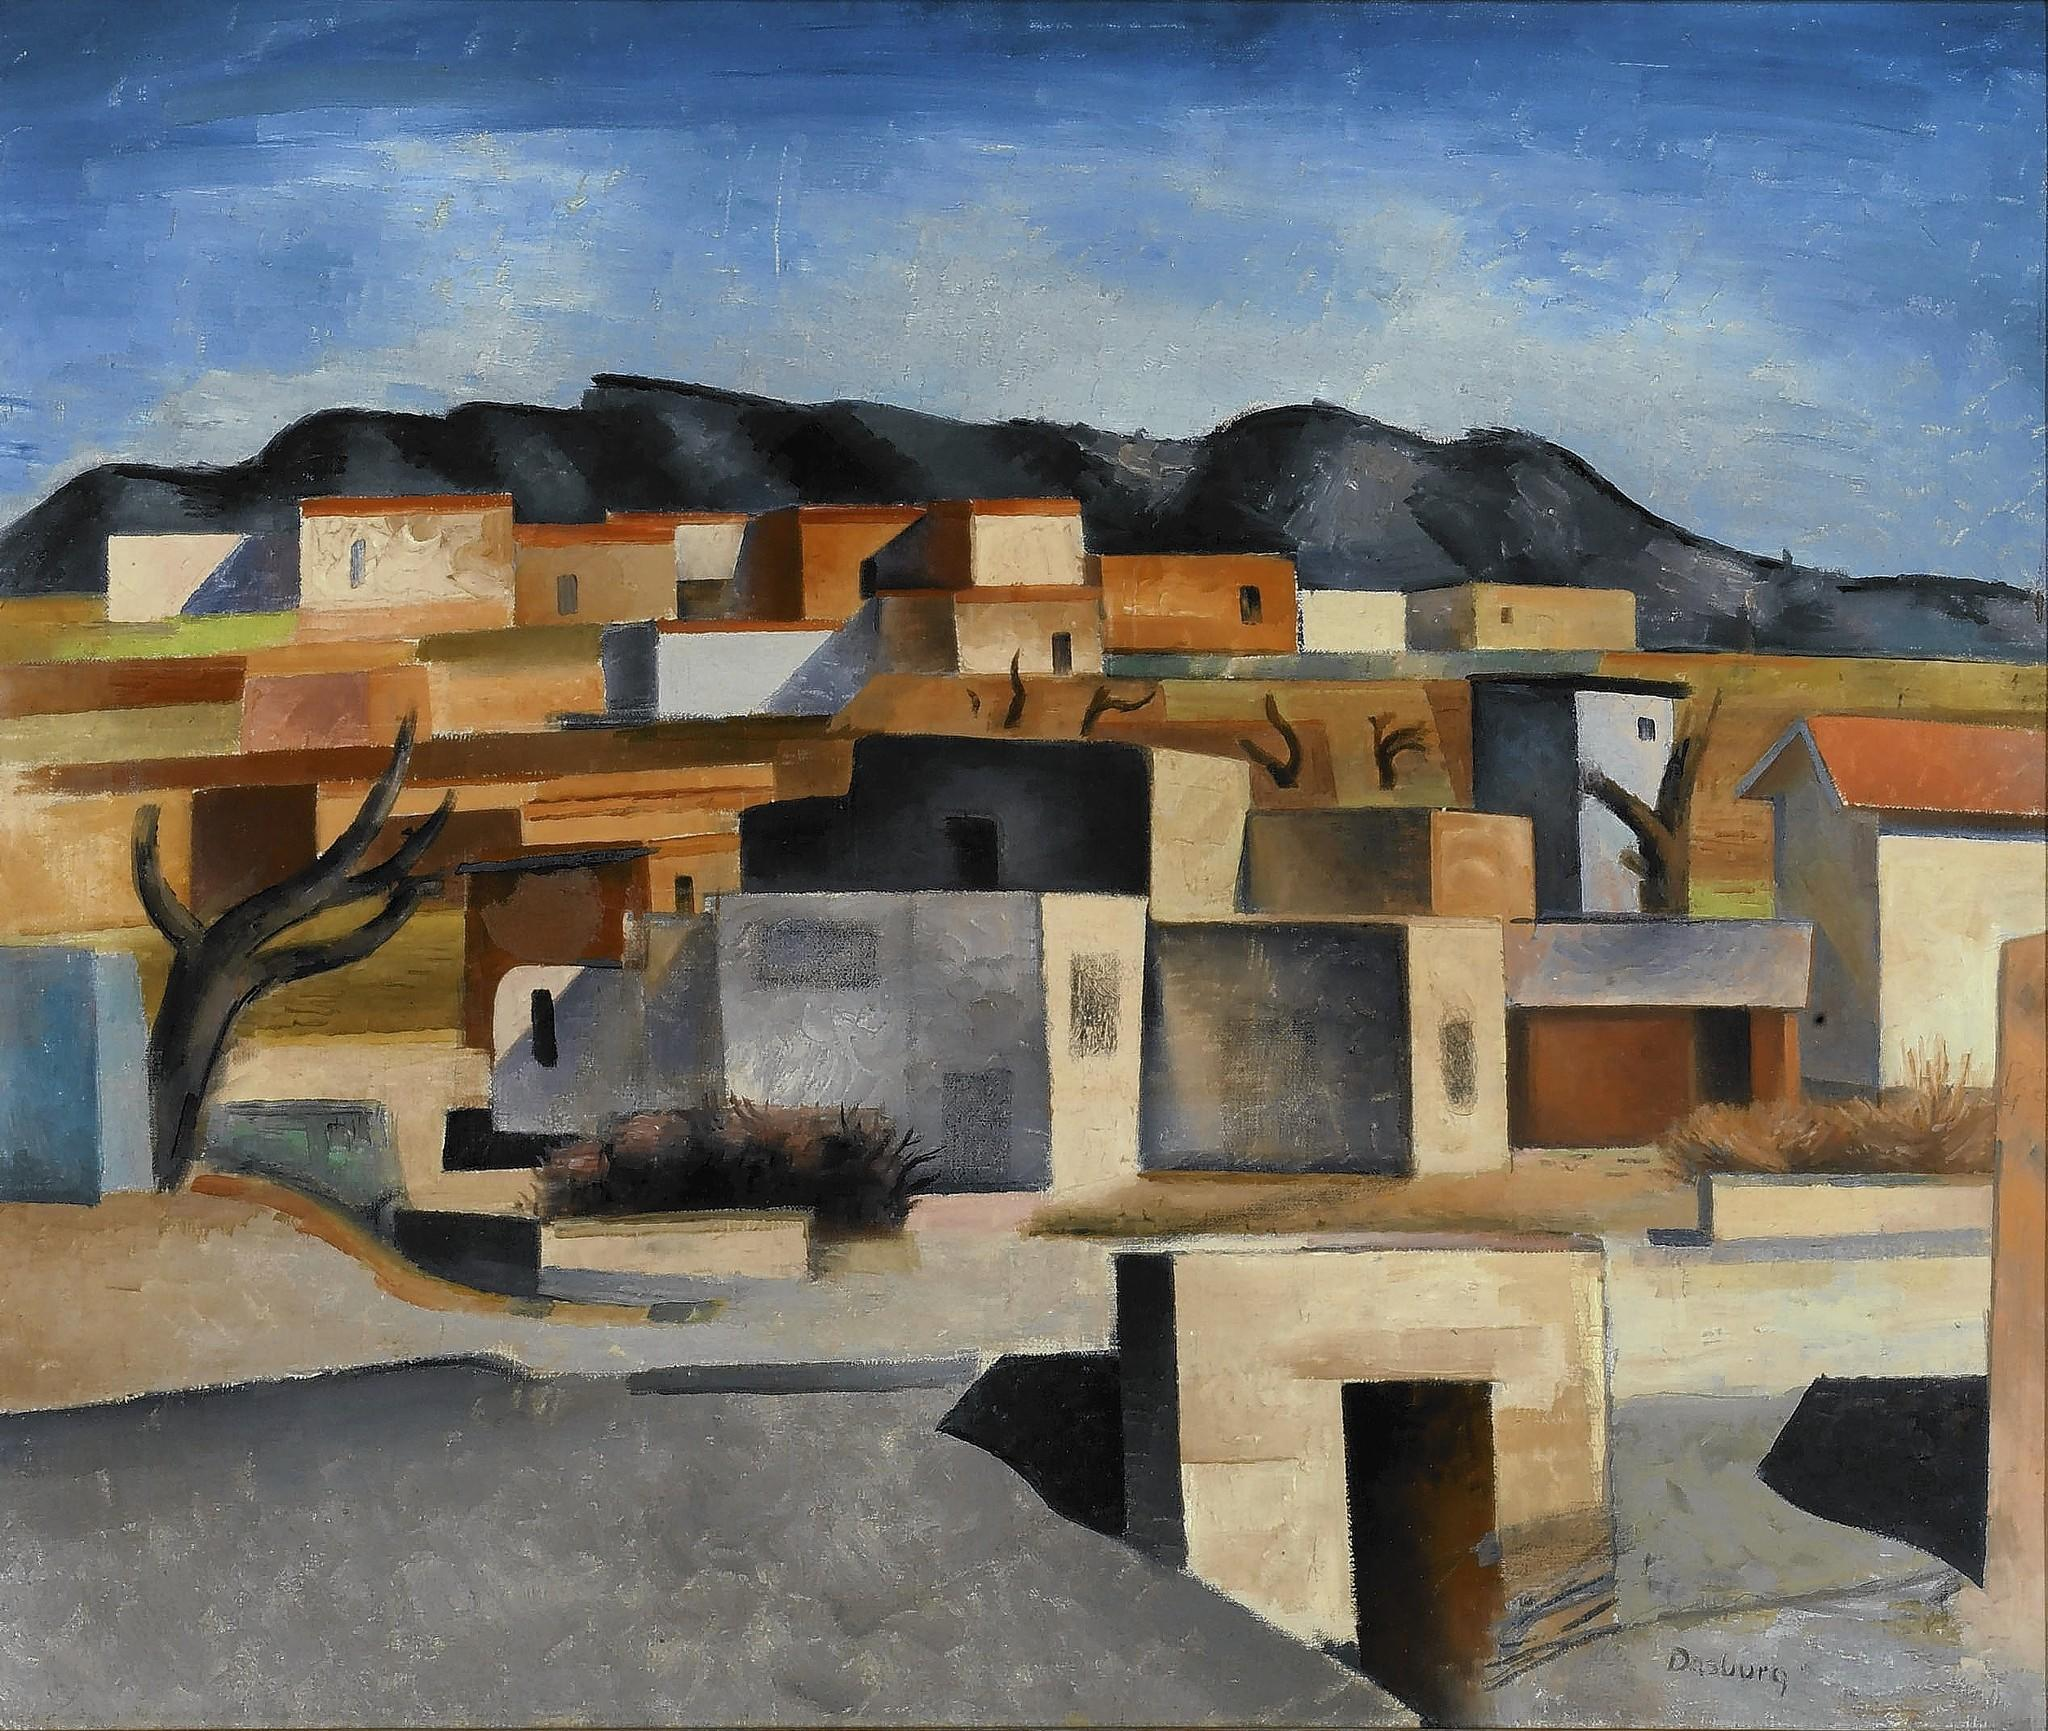 """Pueblo Village (New Mexico Village, Adobe Village"" by Andrew Dasburg."